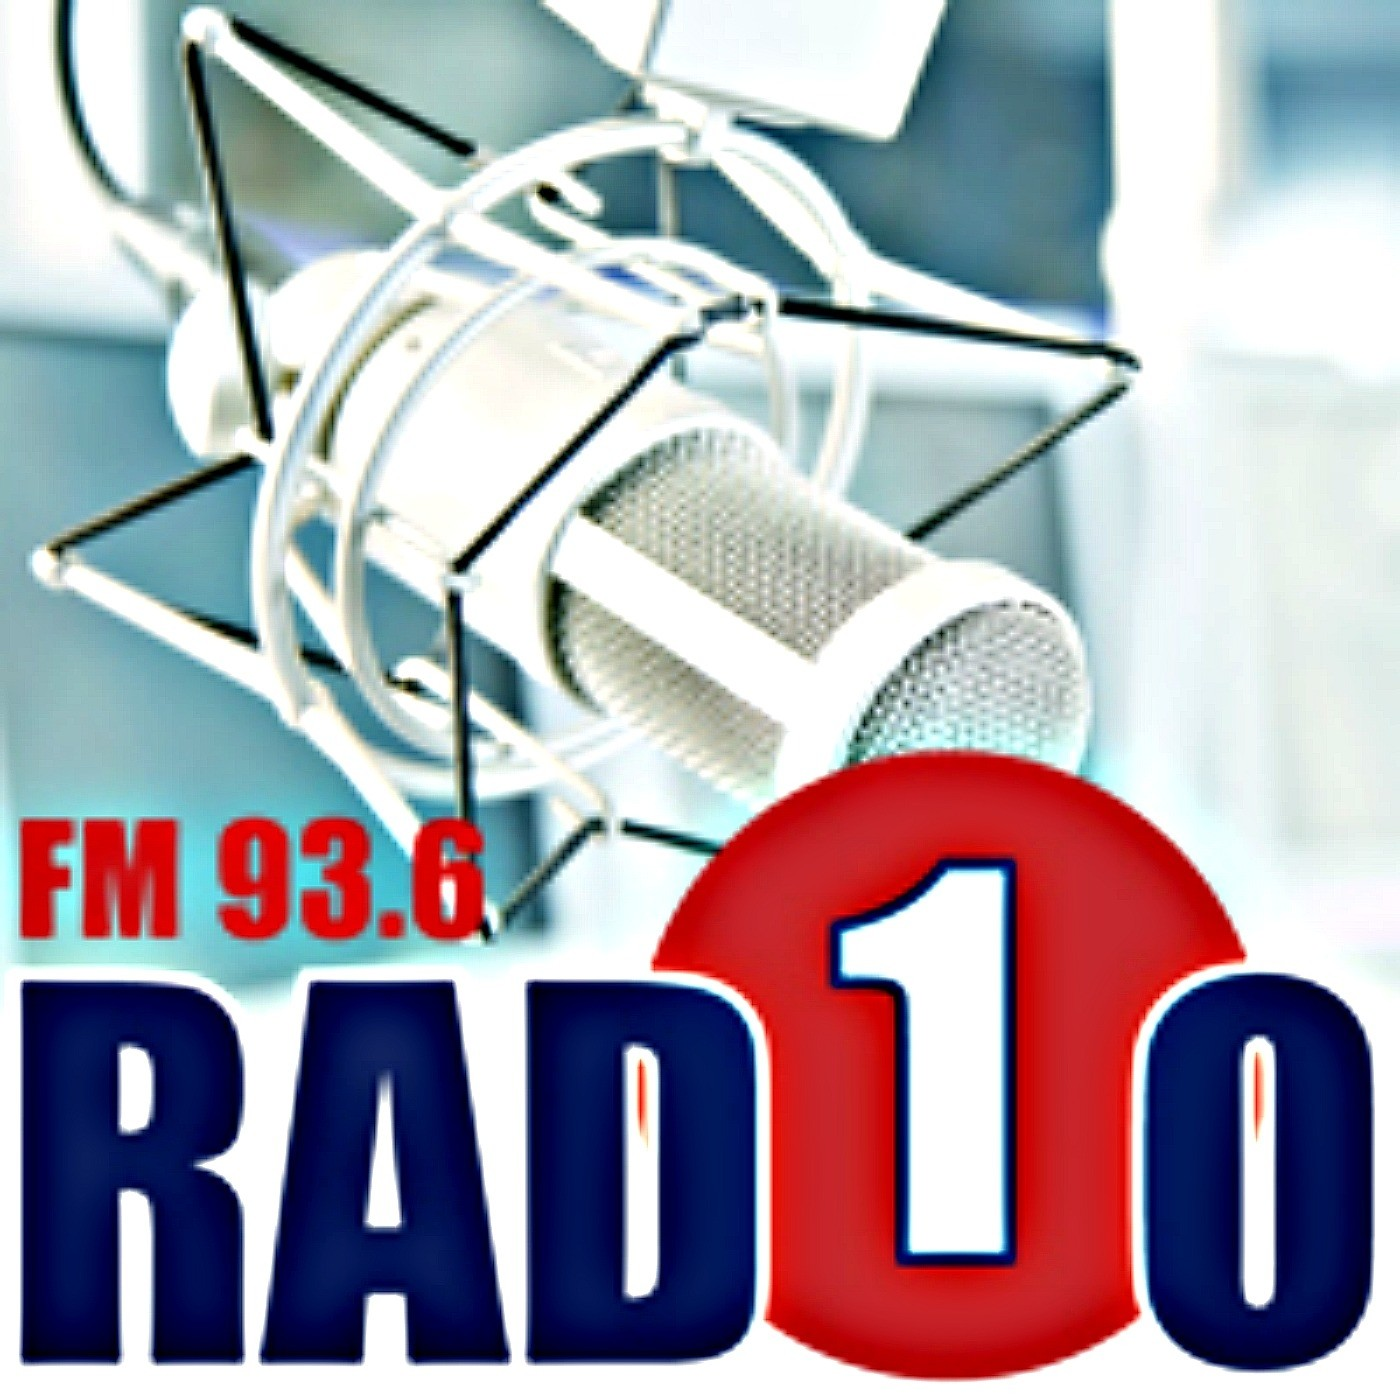 Radio 1 News von Wed, 21 Oct 2020 06:33:59